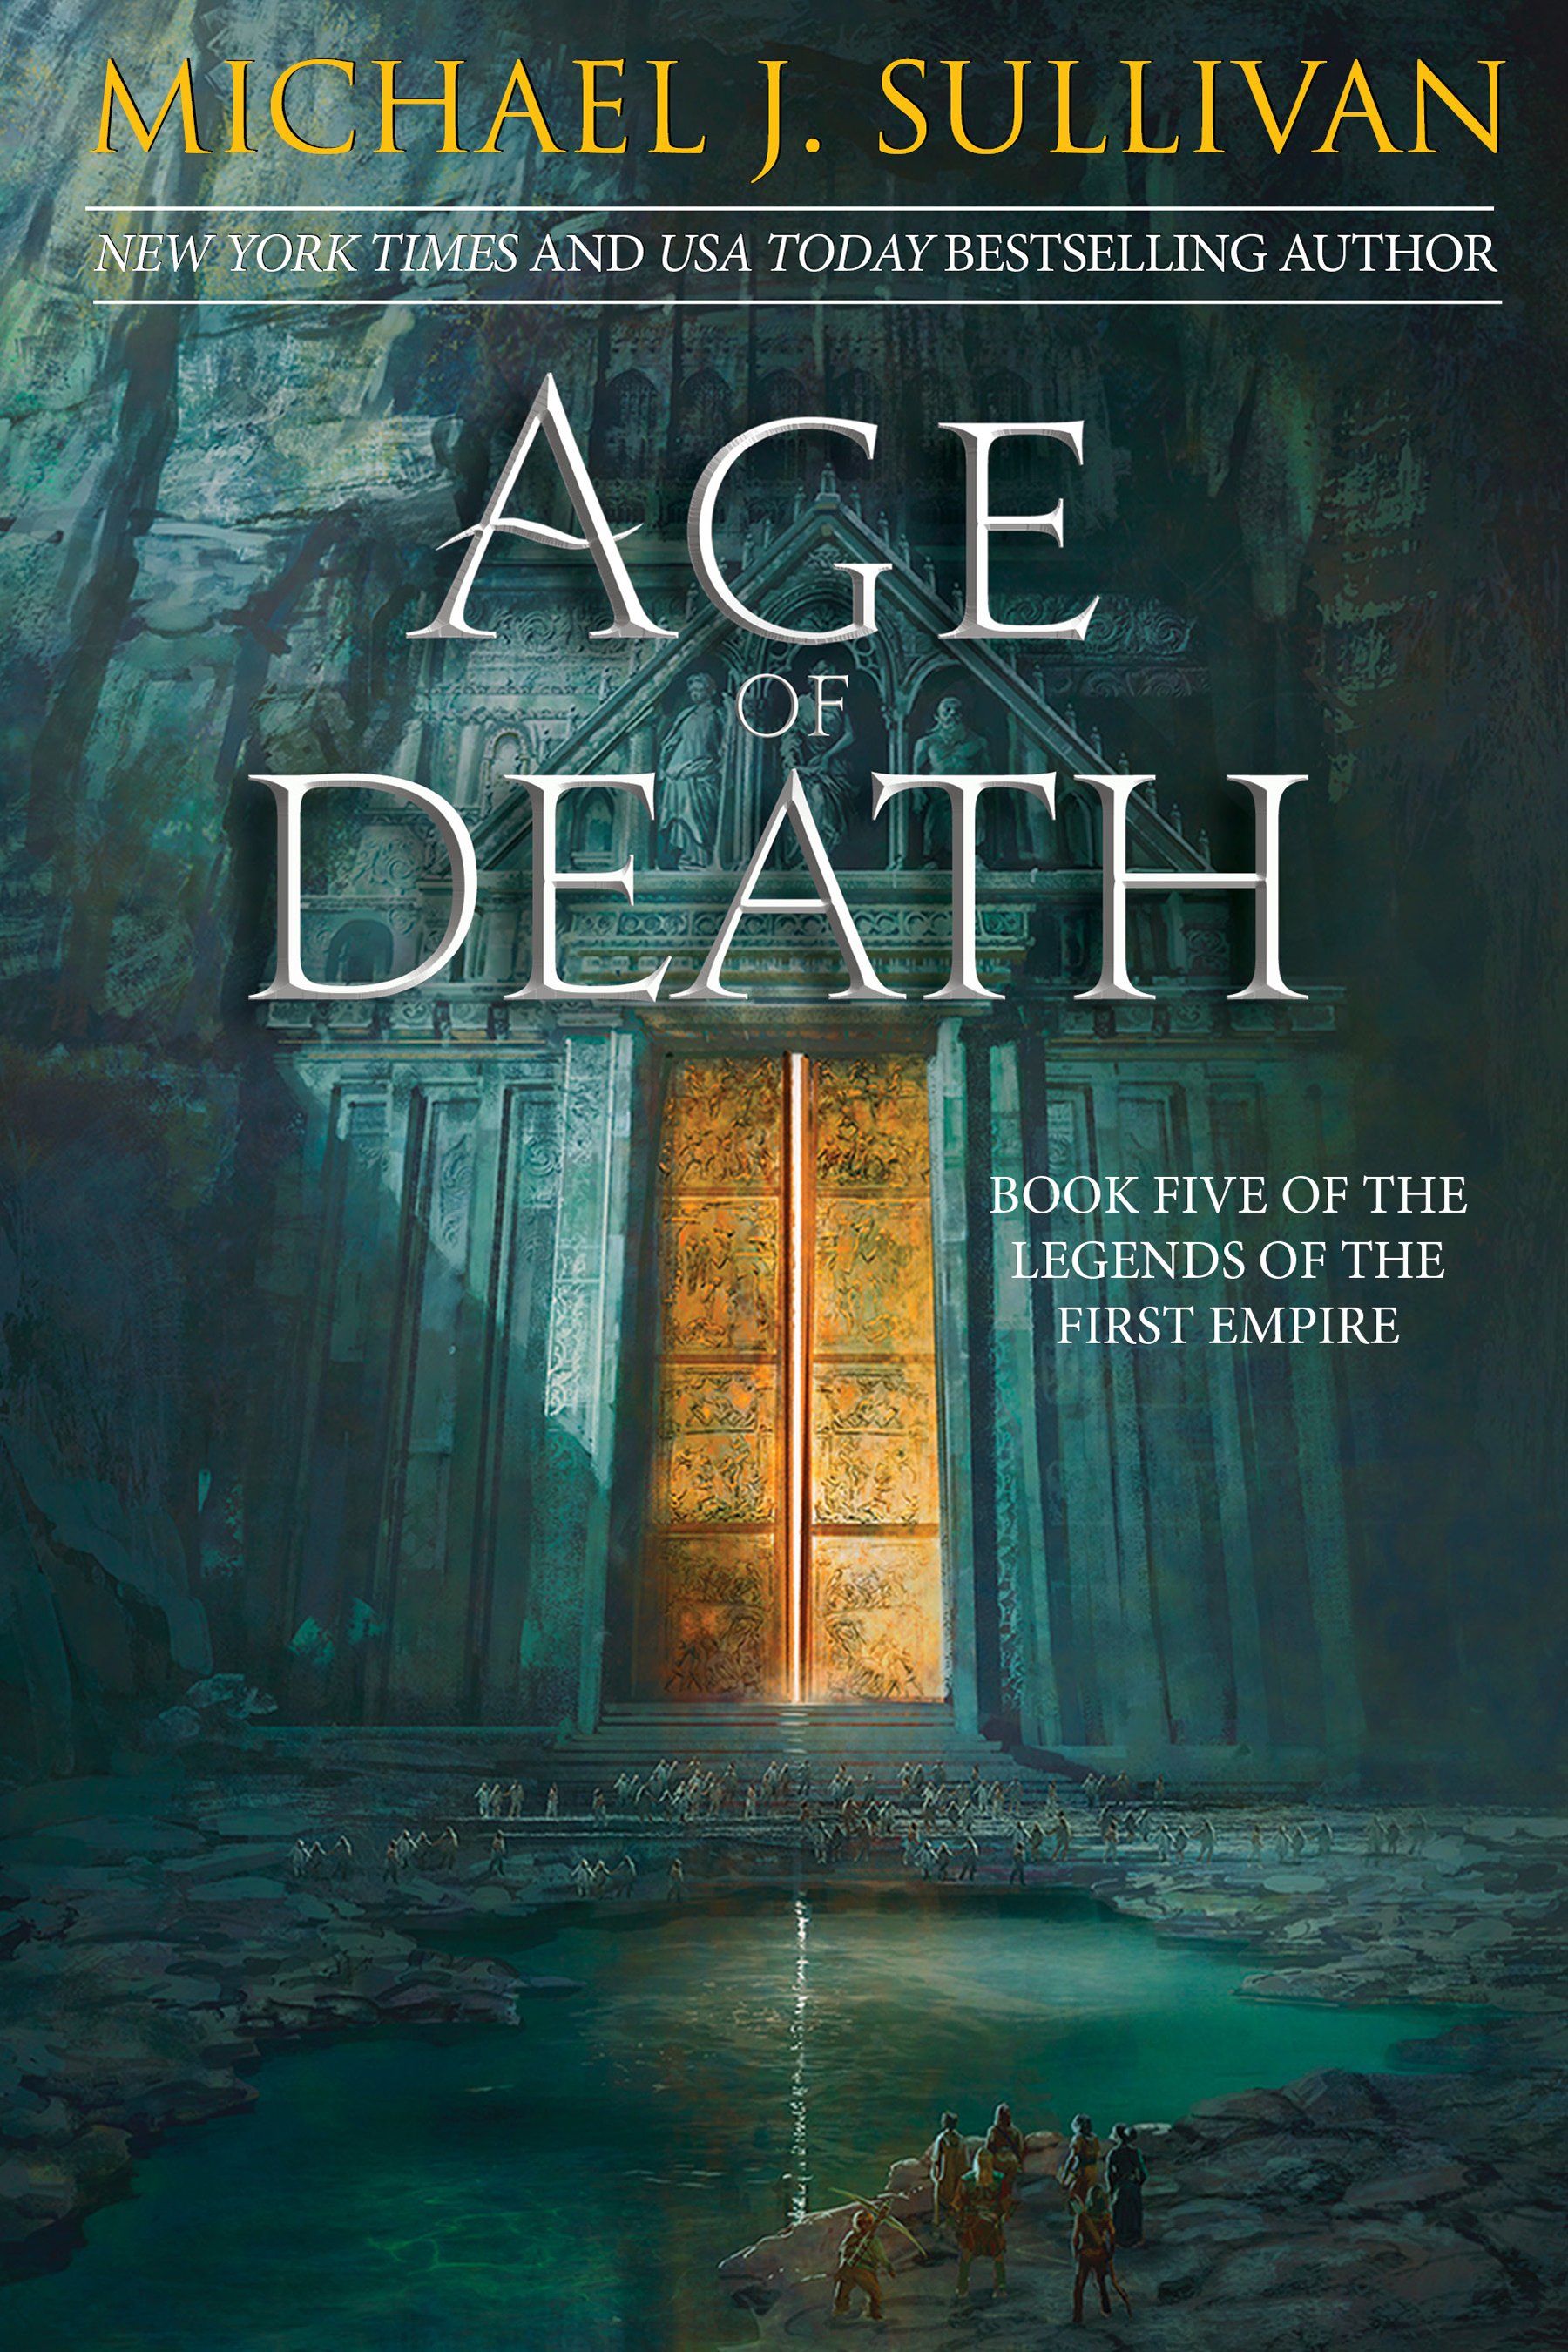 Age of Death by Michael J. Sullivan